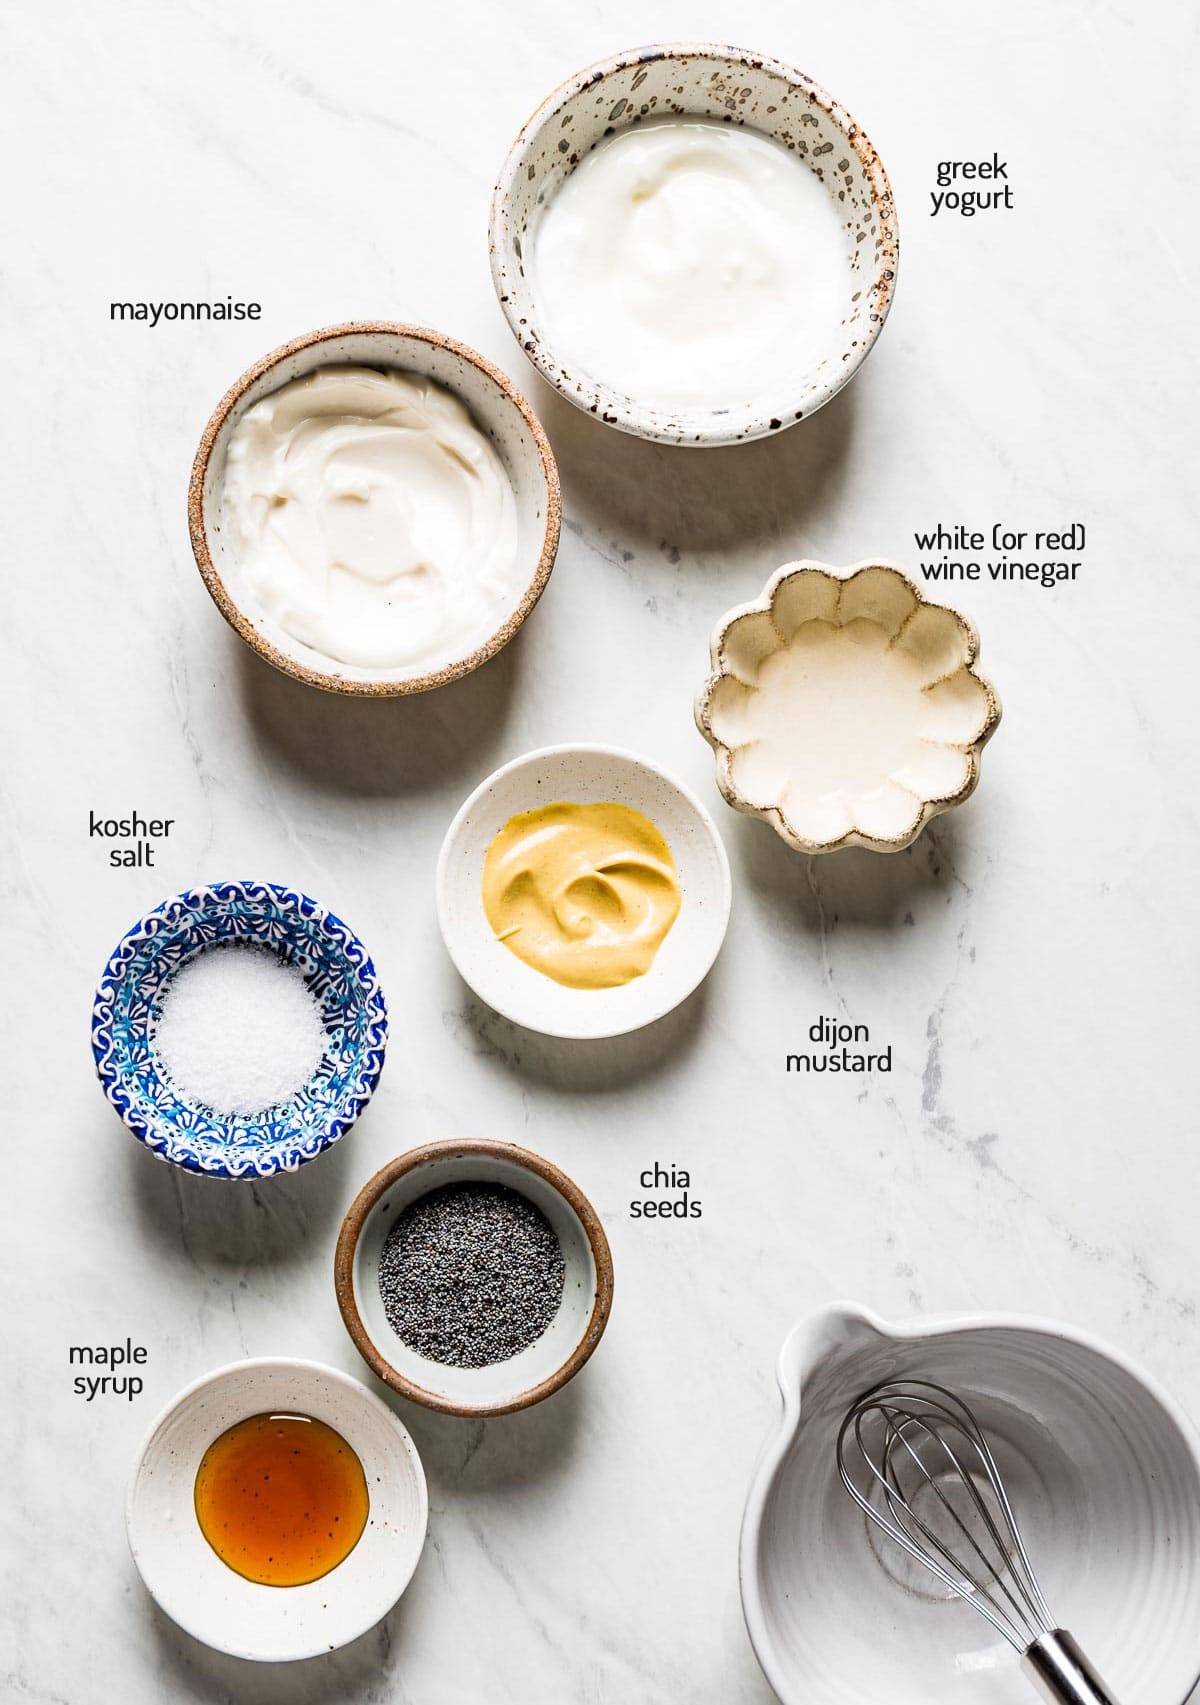 Ingredients for the recipe photographed on a white marble